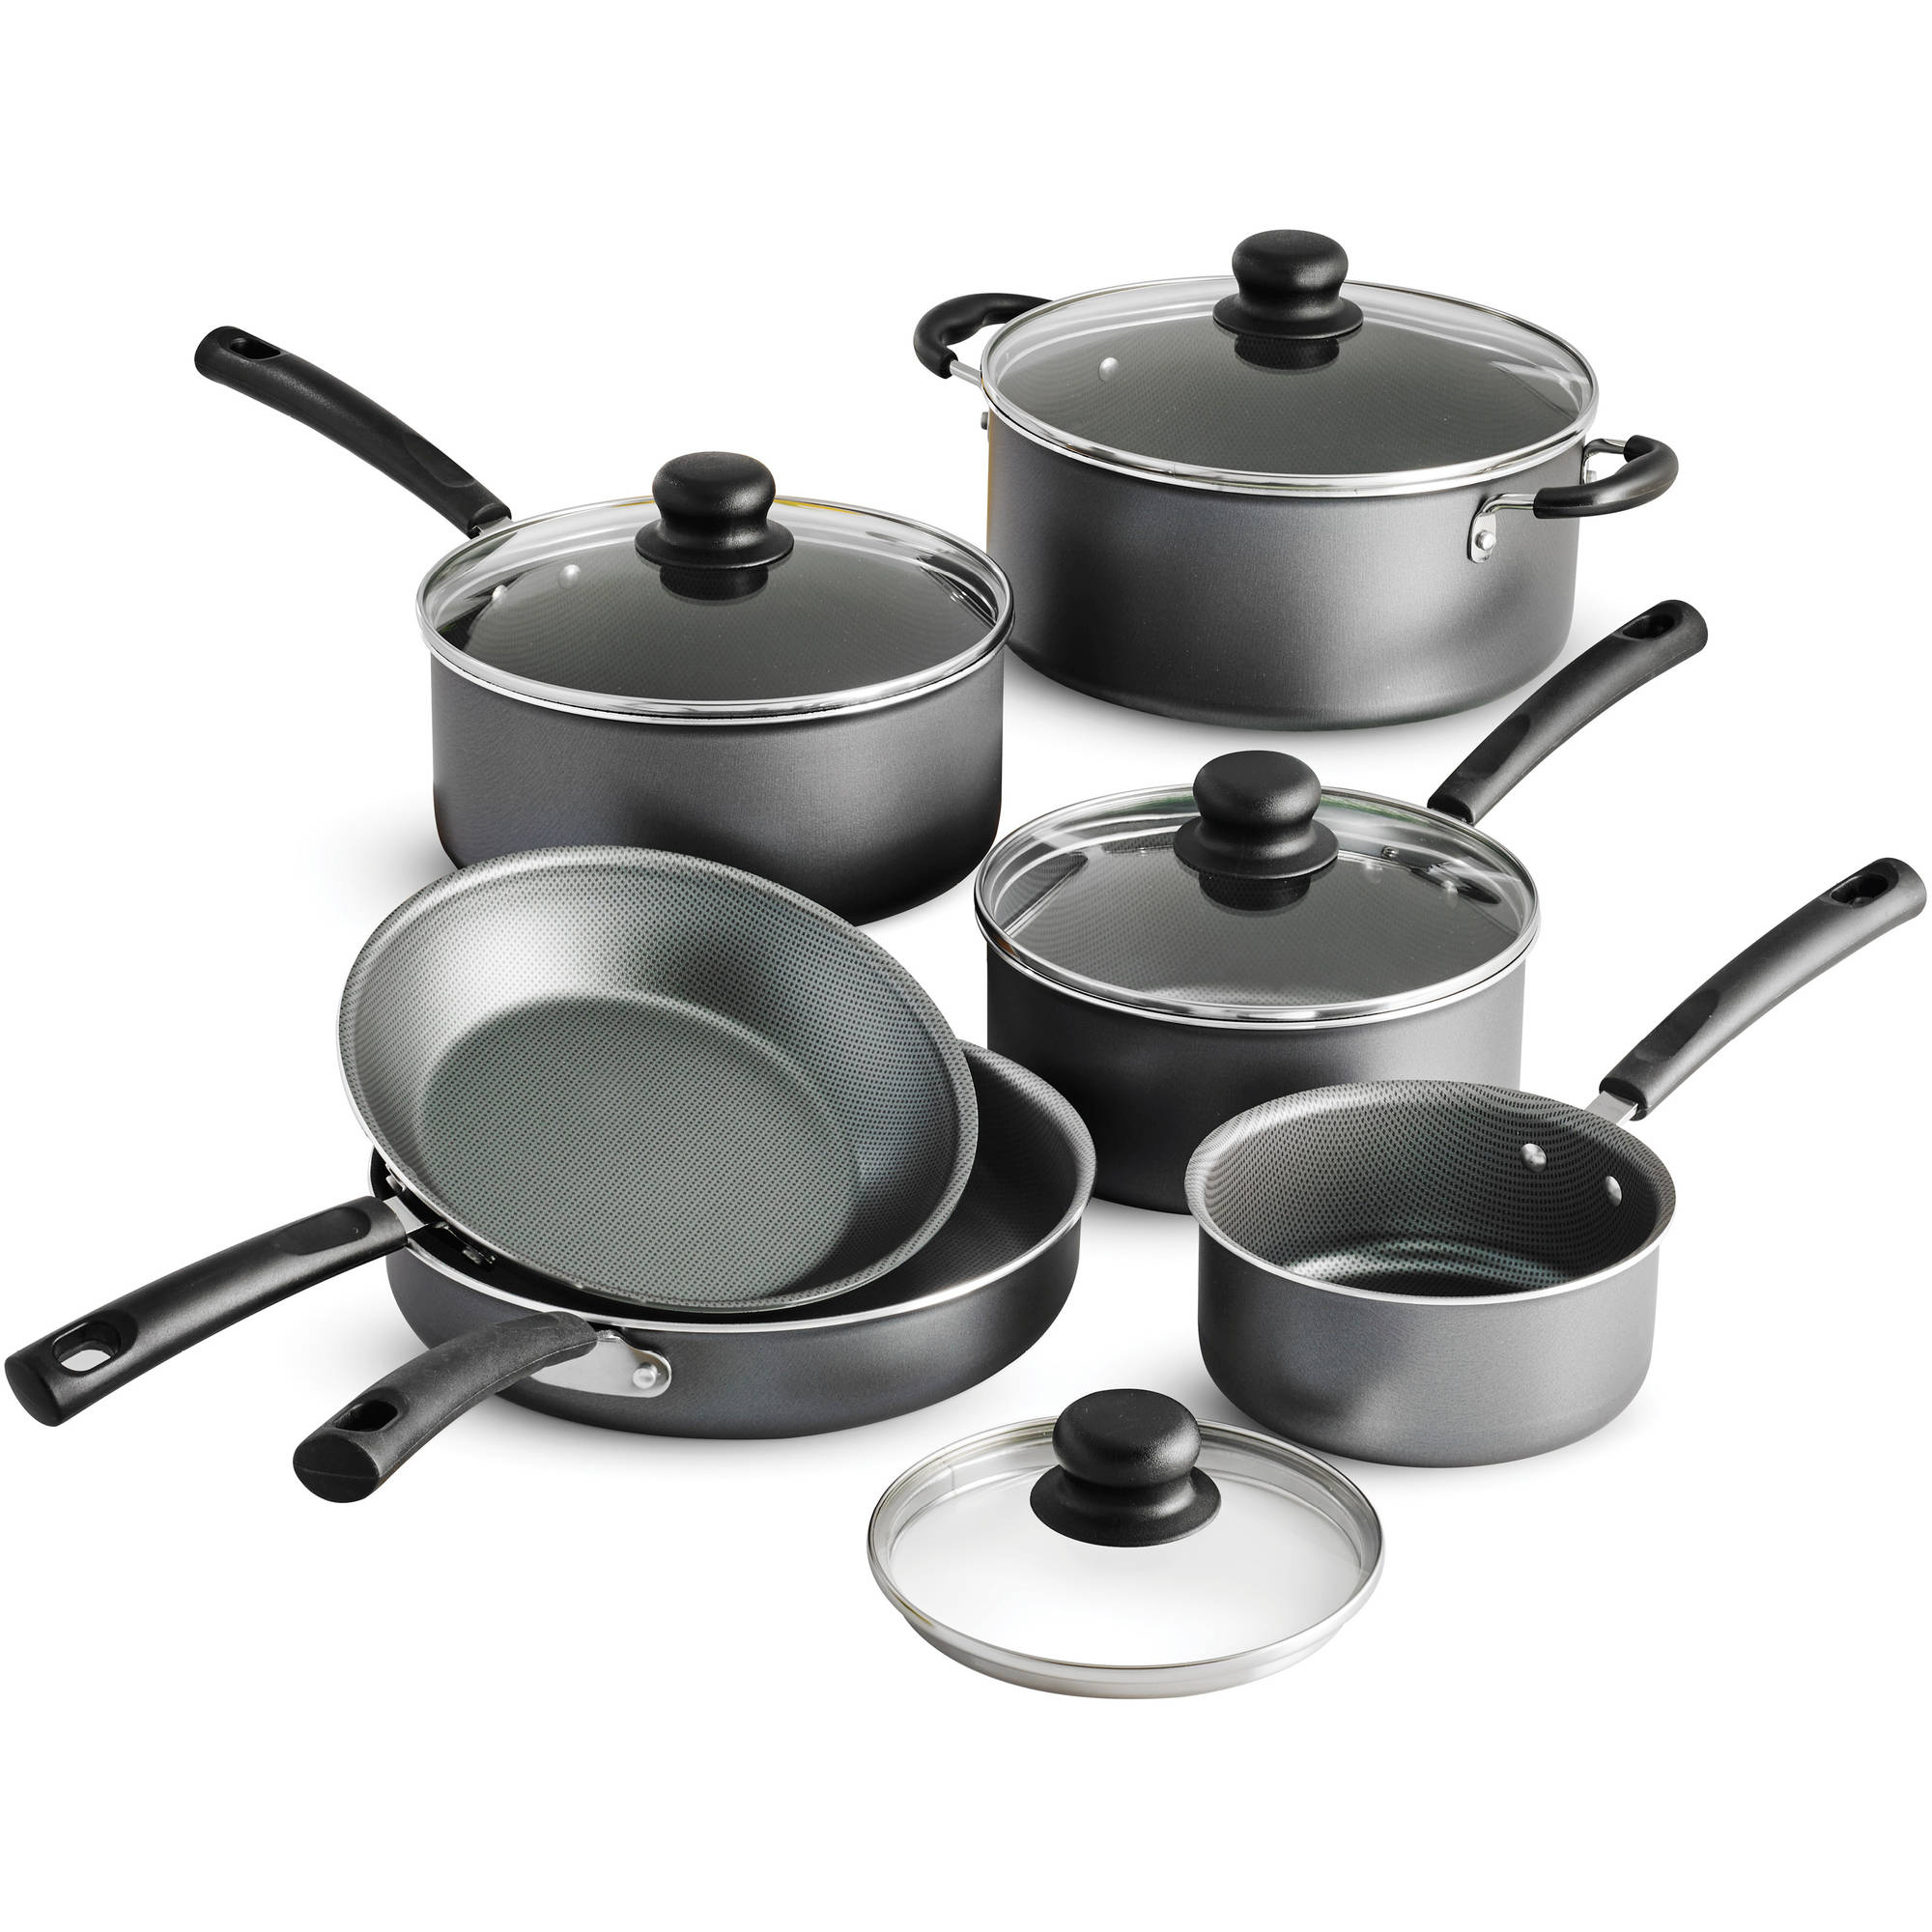 Tramontina PrimaWare 10-Piece Nonstick Cookware Set, Steel Gray